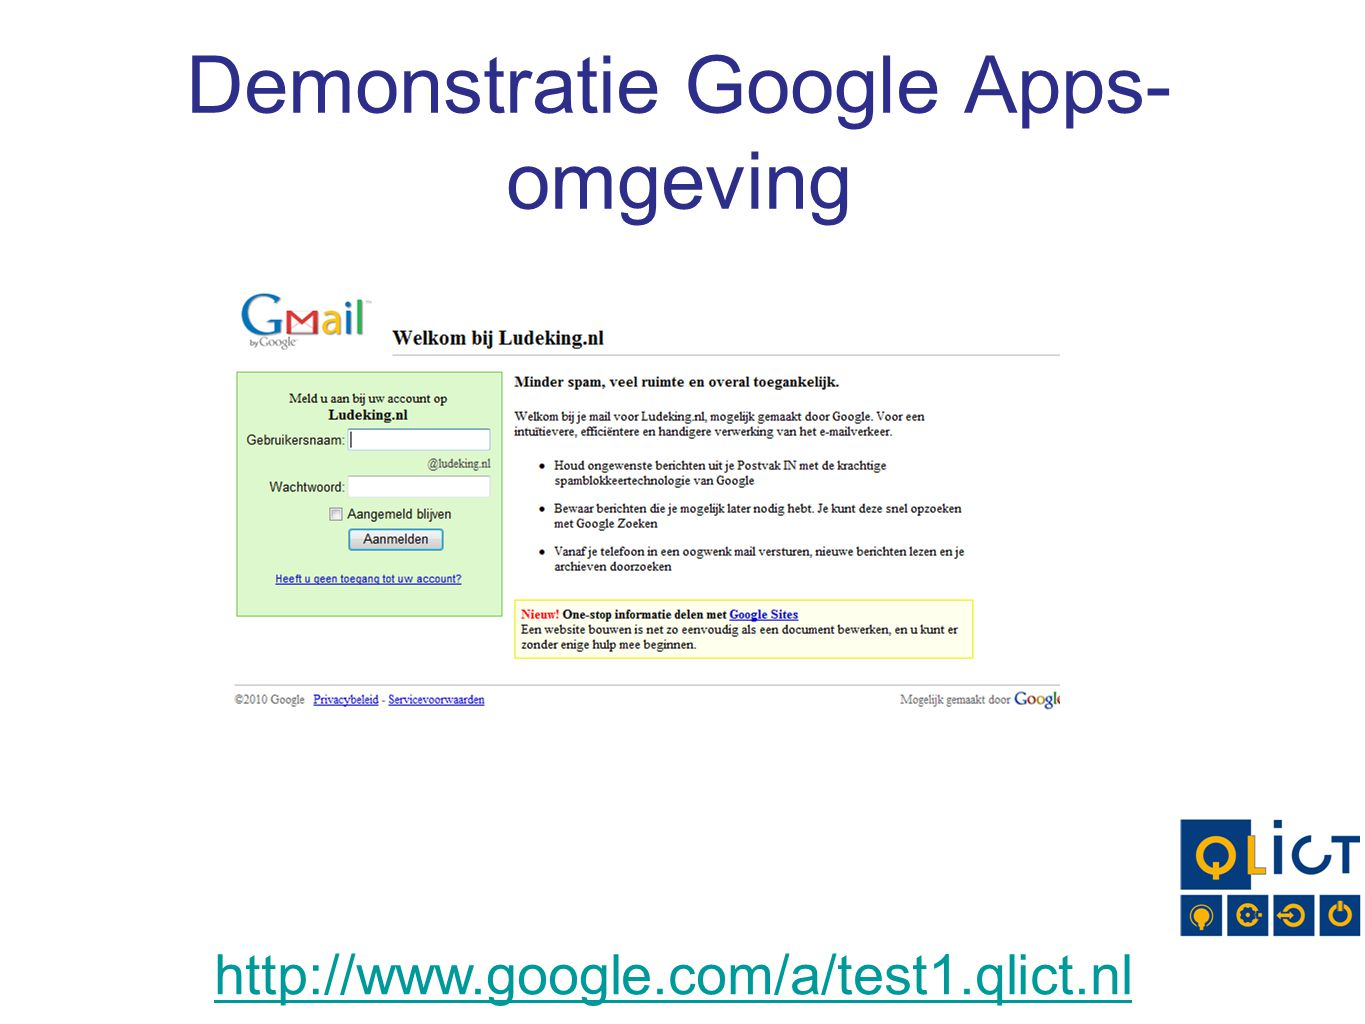 Demonstratie Google Apps-omgeving